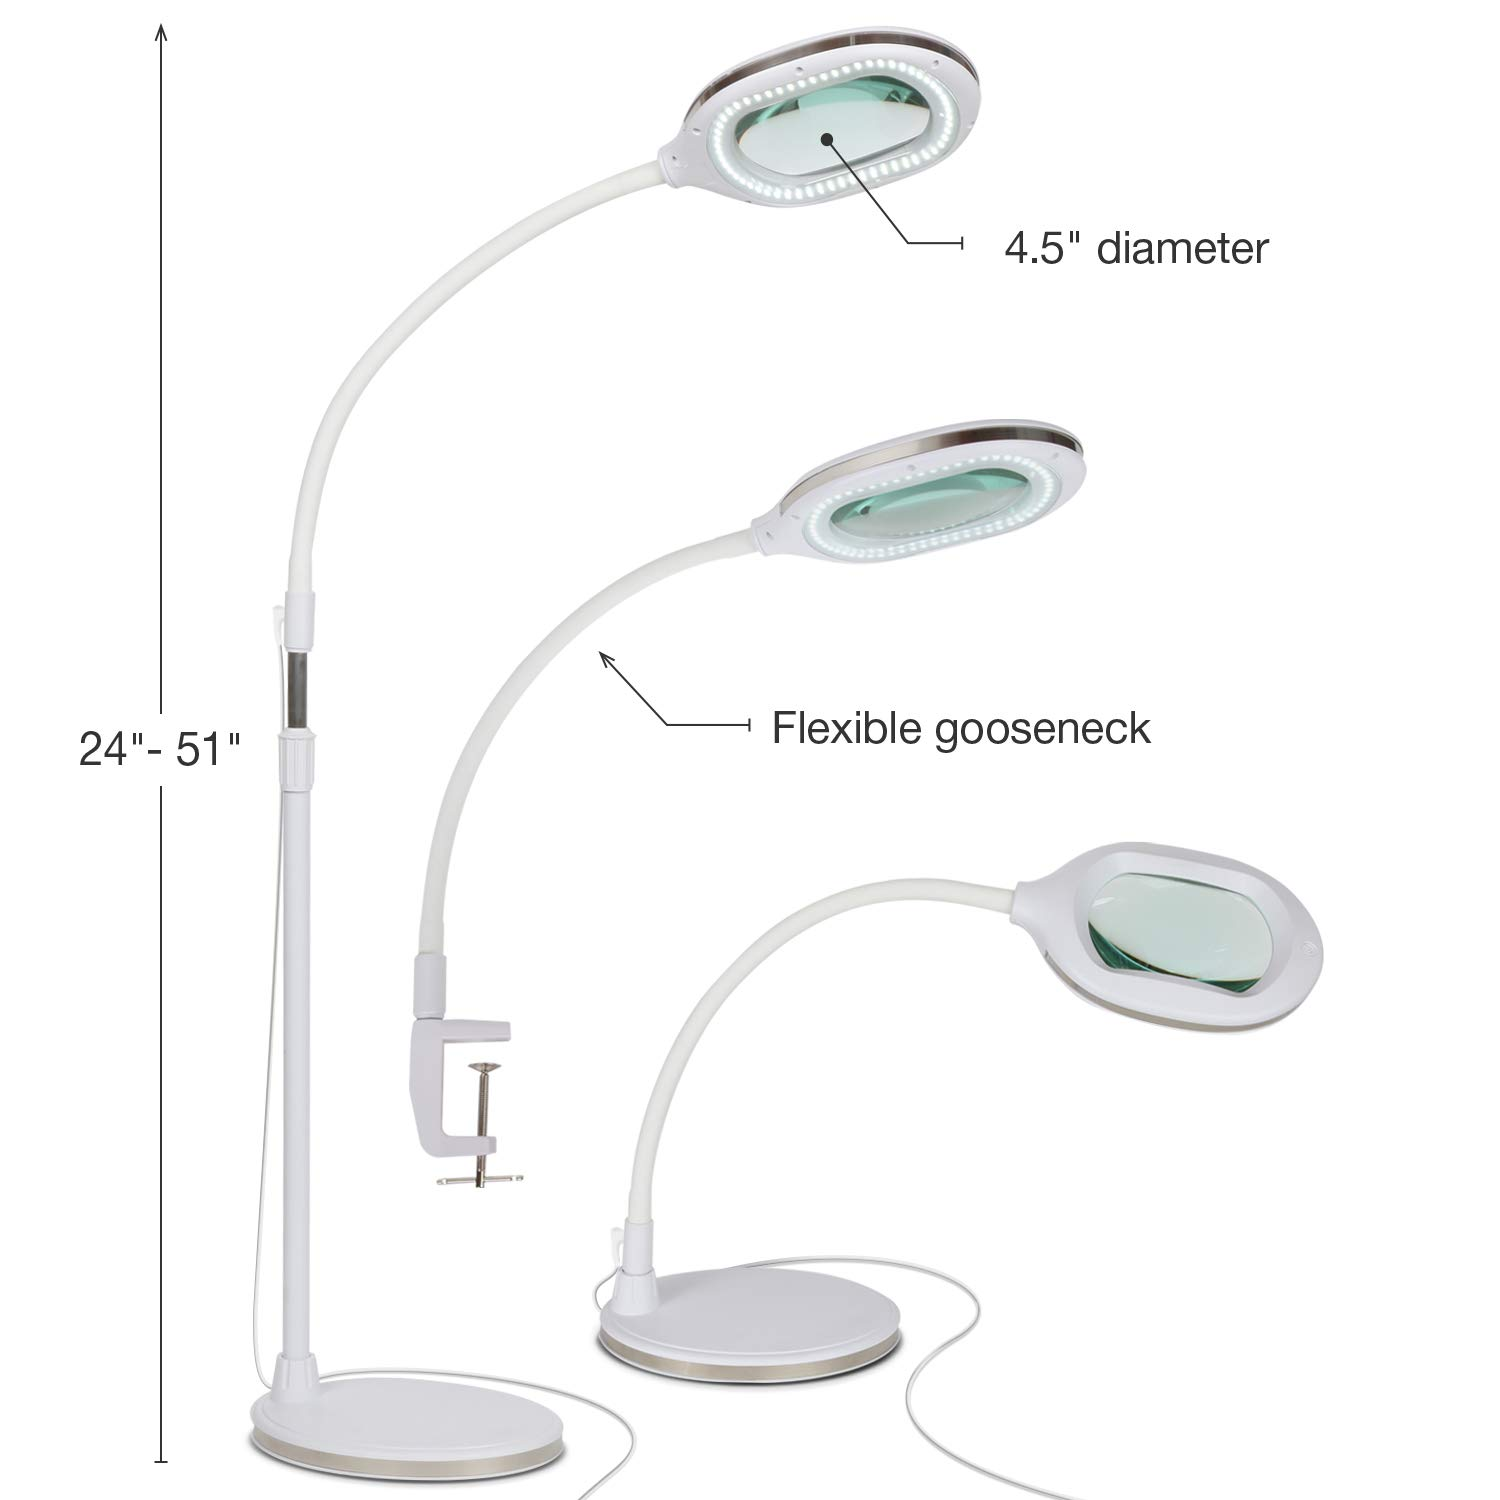 Brightech Lightview Pro 3 in 1 LED Magnifying Glass Floor Lamp- Use as a Table, Floor, or Desk Lamp - Real Diopter Glass Lens – Height Adjustable Gooseneck Standing Light – White by Brightech (Image #3)